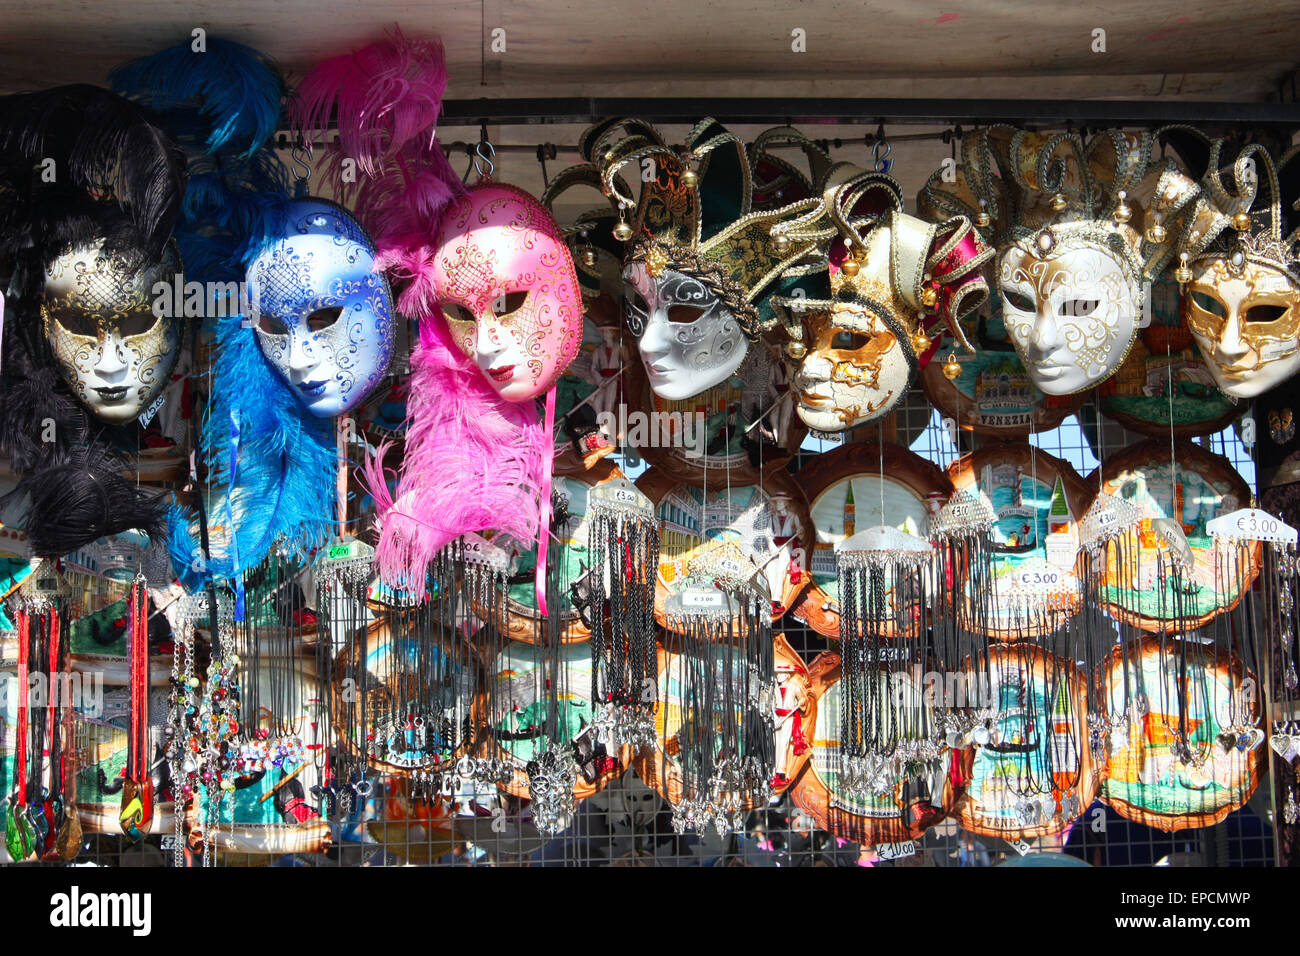 Decorative masks and souvenirs in Venice, Italy Stock Photo